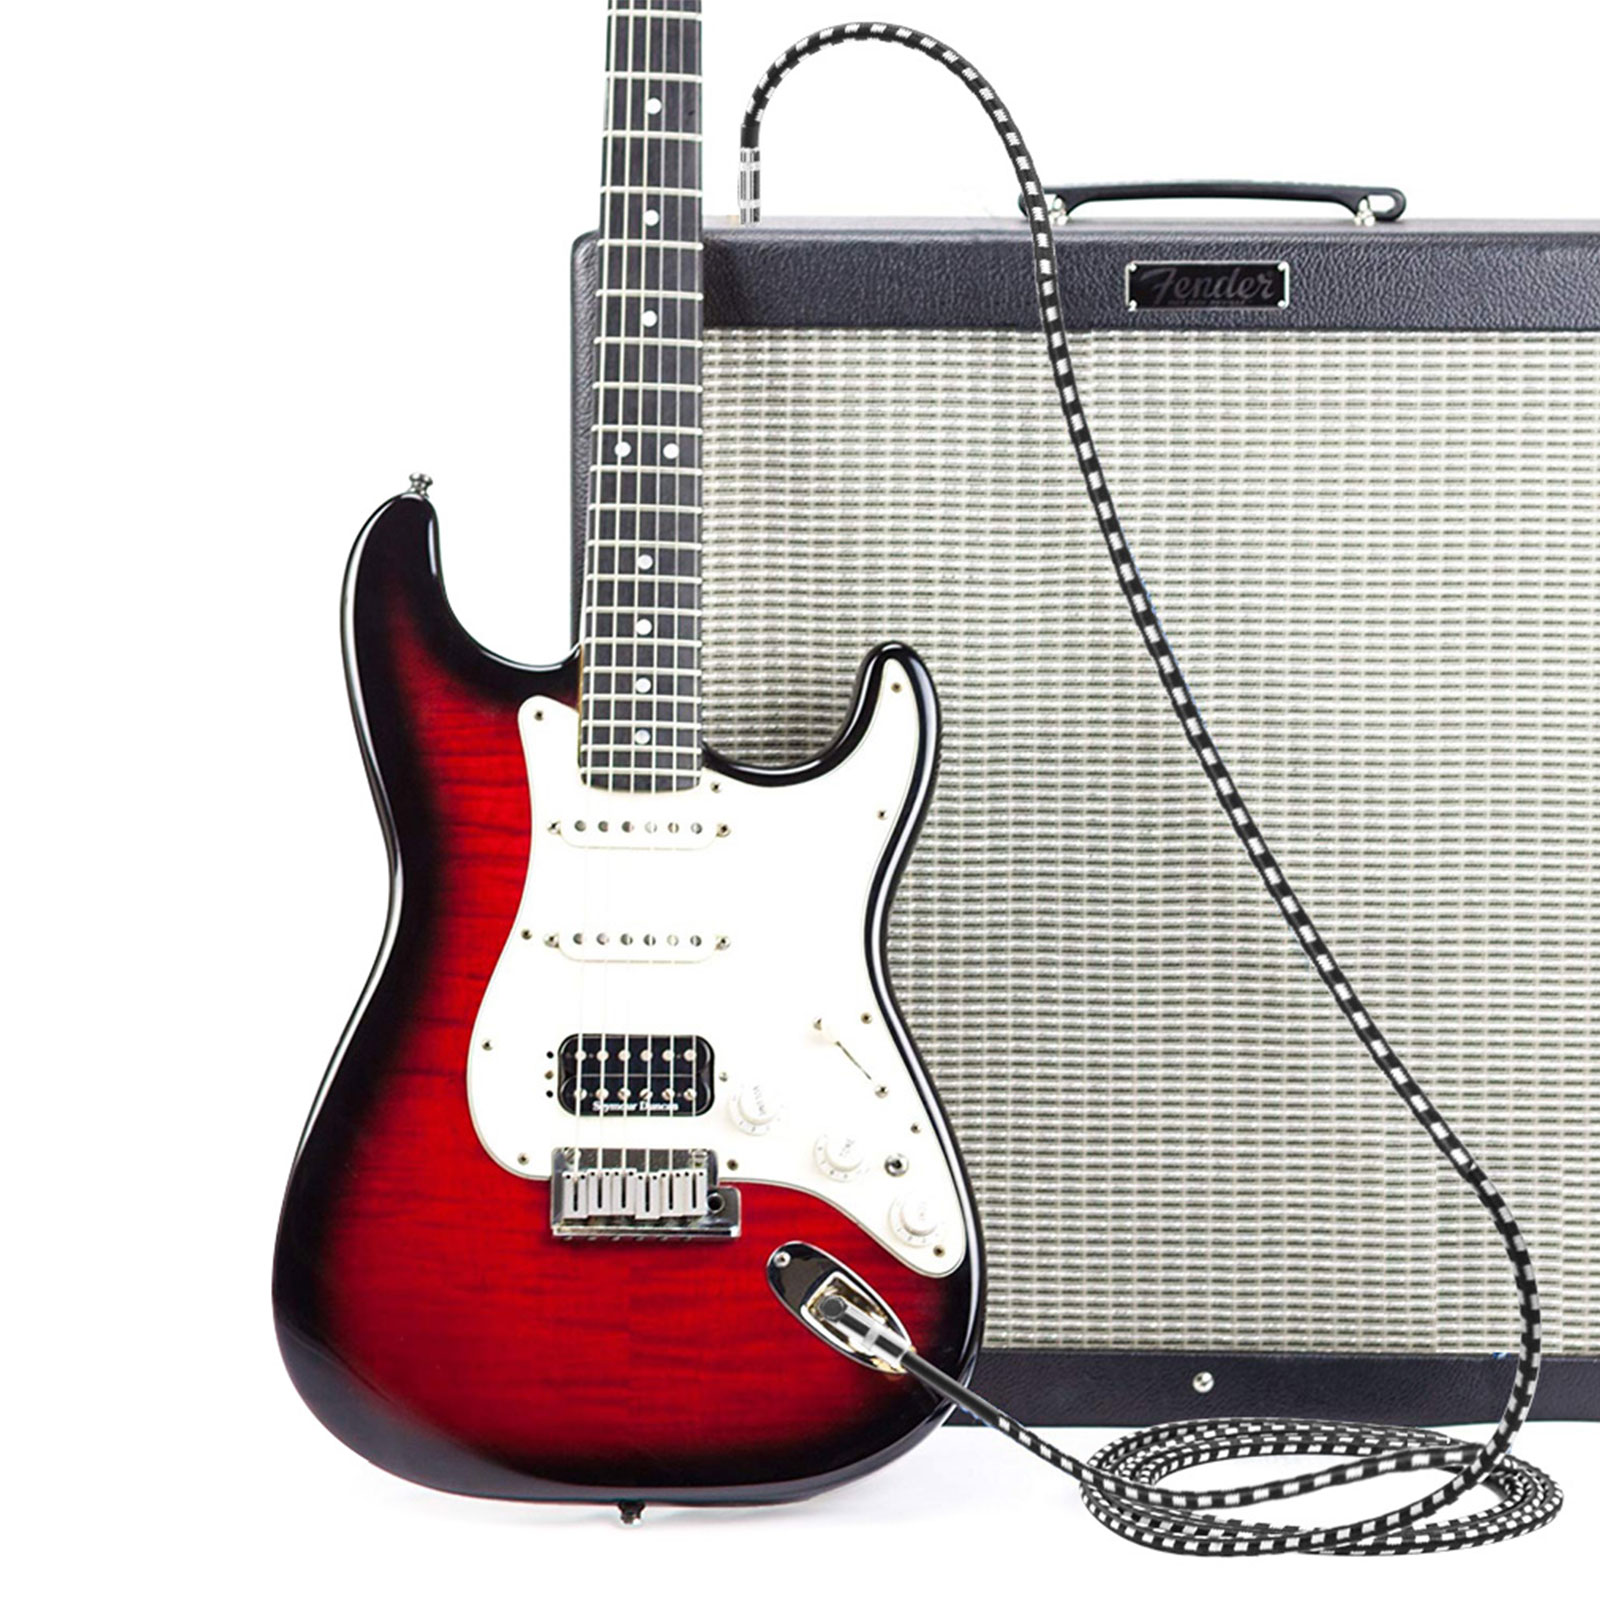 10FT-6-35mm-Jack-Premium-Electric-Guitar-Bass-Cable-Musical-Instrument-AMP-Cord thumbnail 7